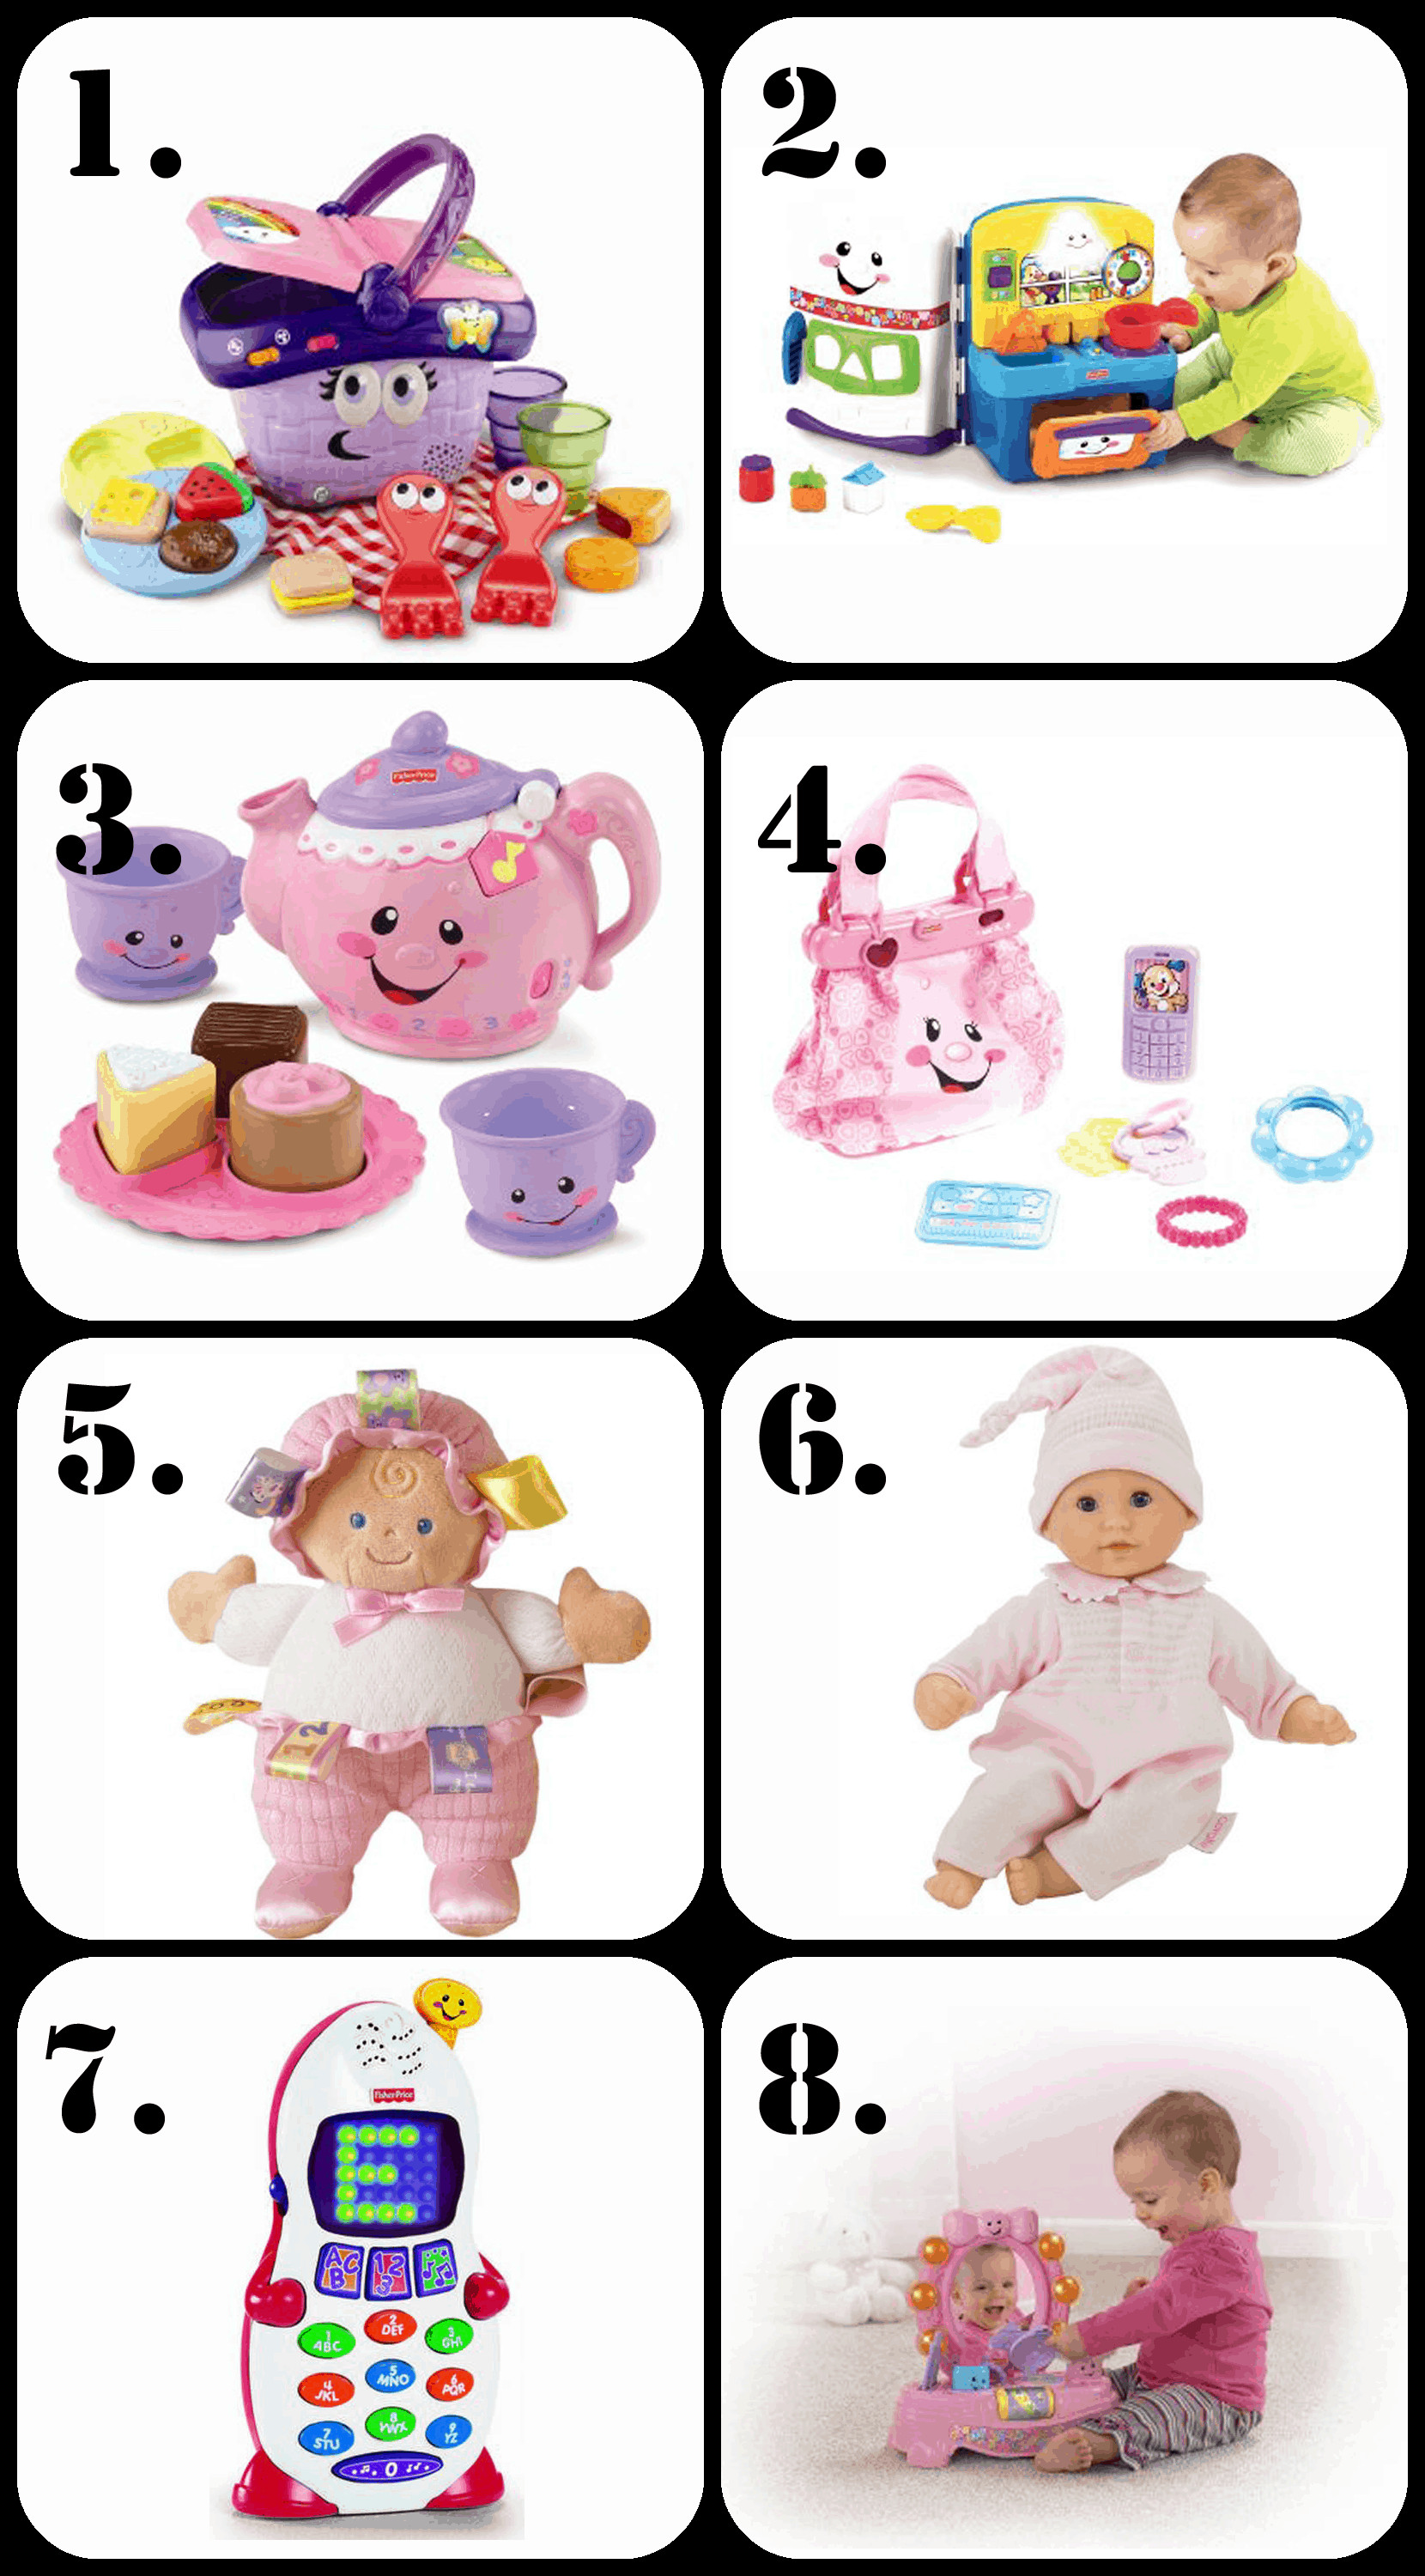 1 Year Old Baby Girl Gift Ideas  The Ultimate List of Gift Ideas for a 1 Year Old Girl